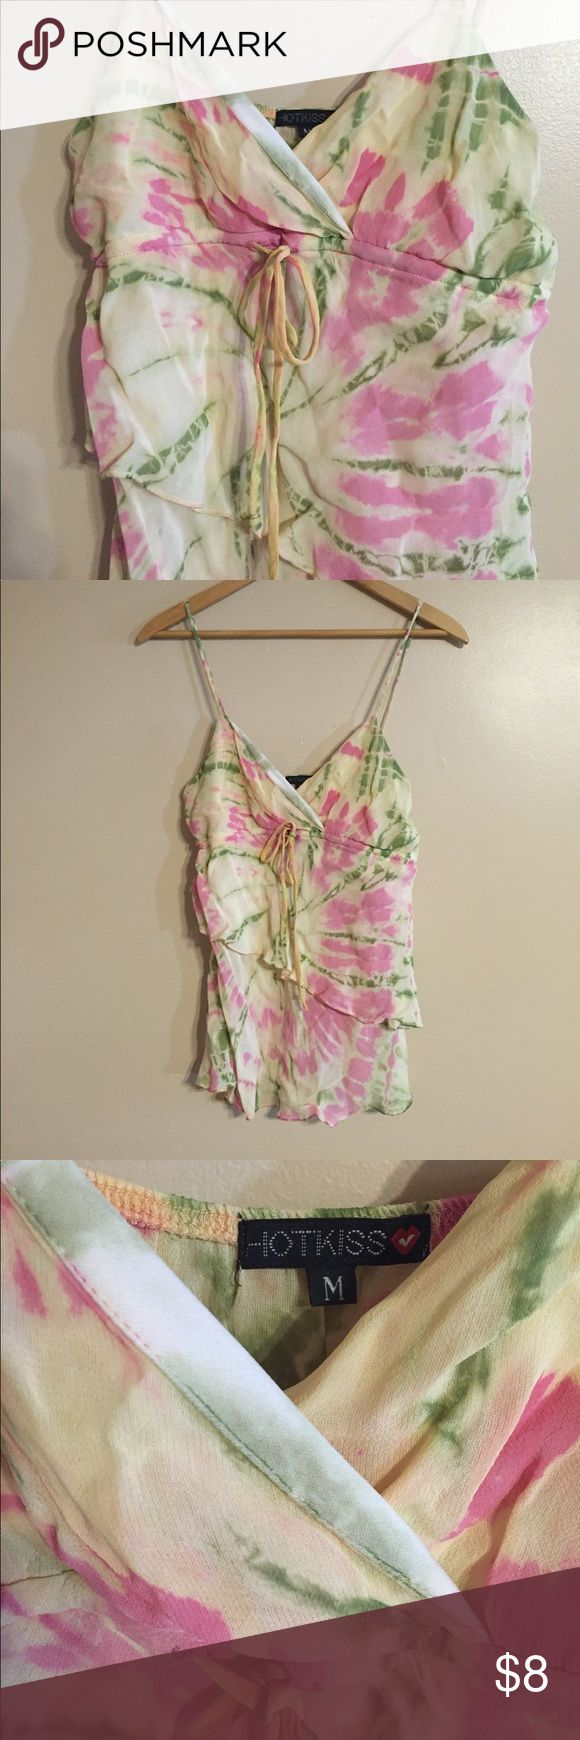 NWOT Tie Dye Flouncy Bikini Tank Never worn! Very unique shirt, with a pink, green and cream tie dye pattern in a multi-layered cut. Pull string at bust and inner lining on chest area. Hot Kiss Tops Blouses